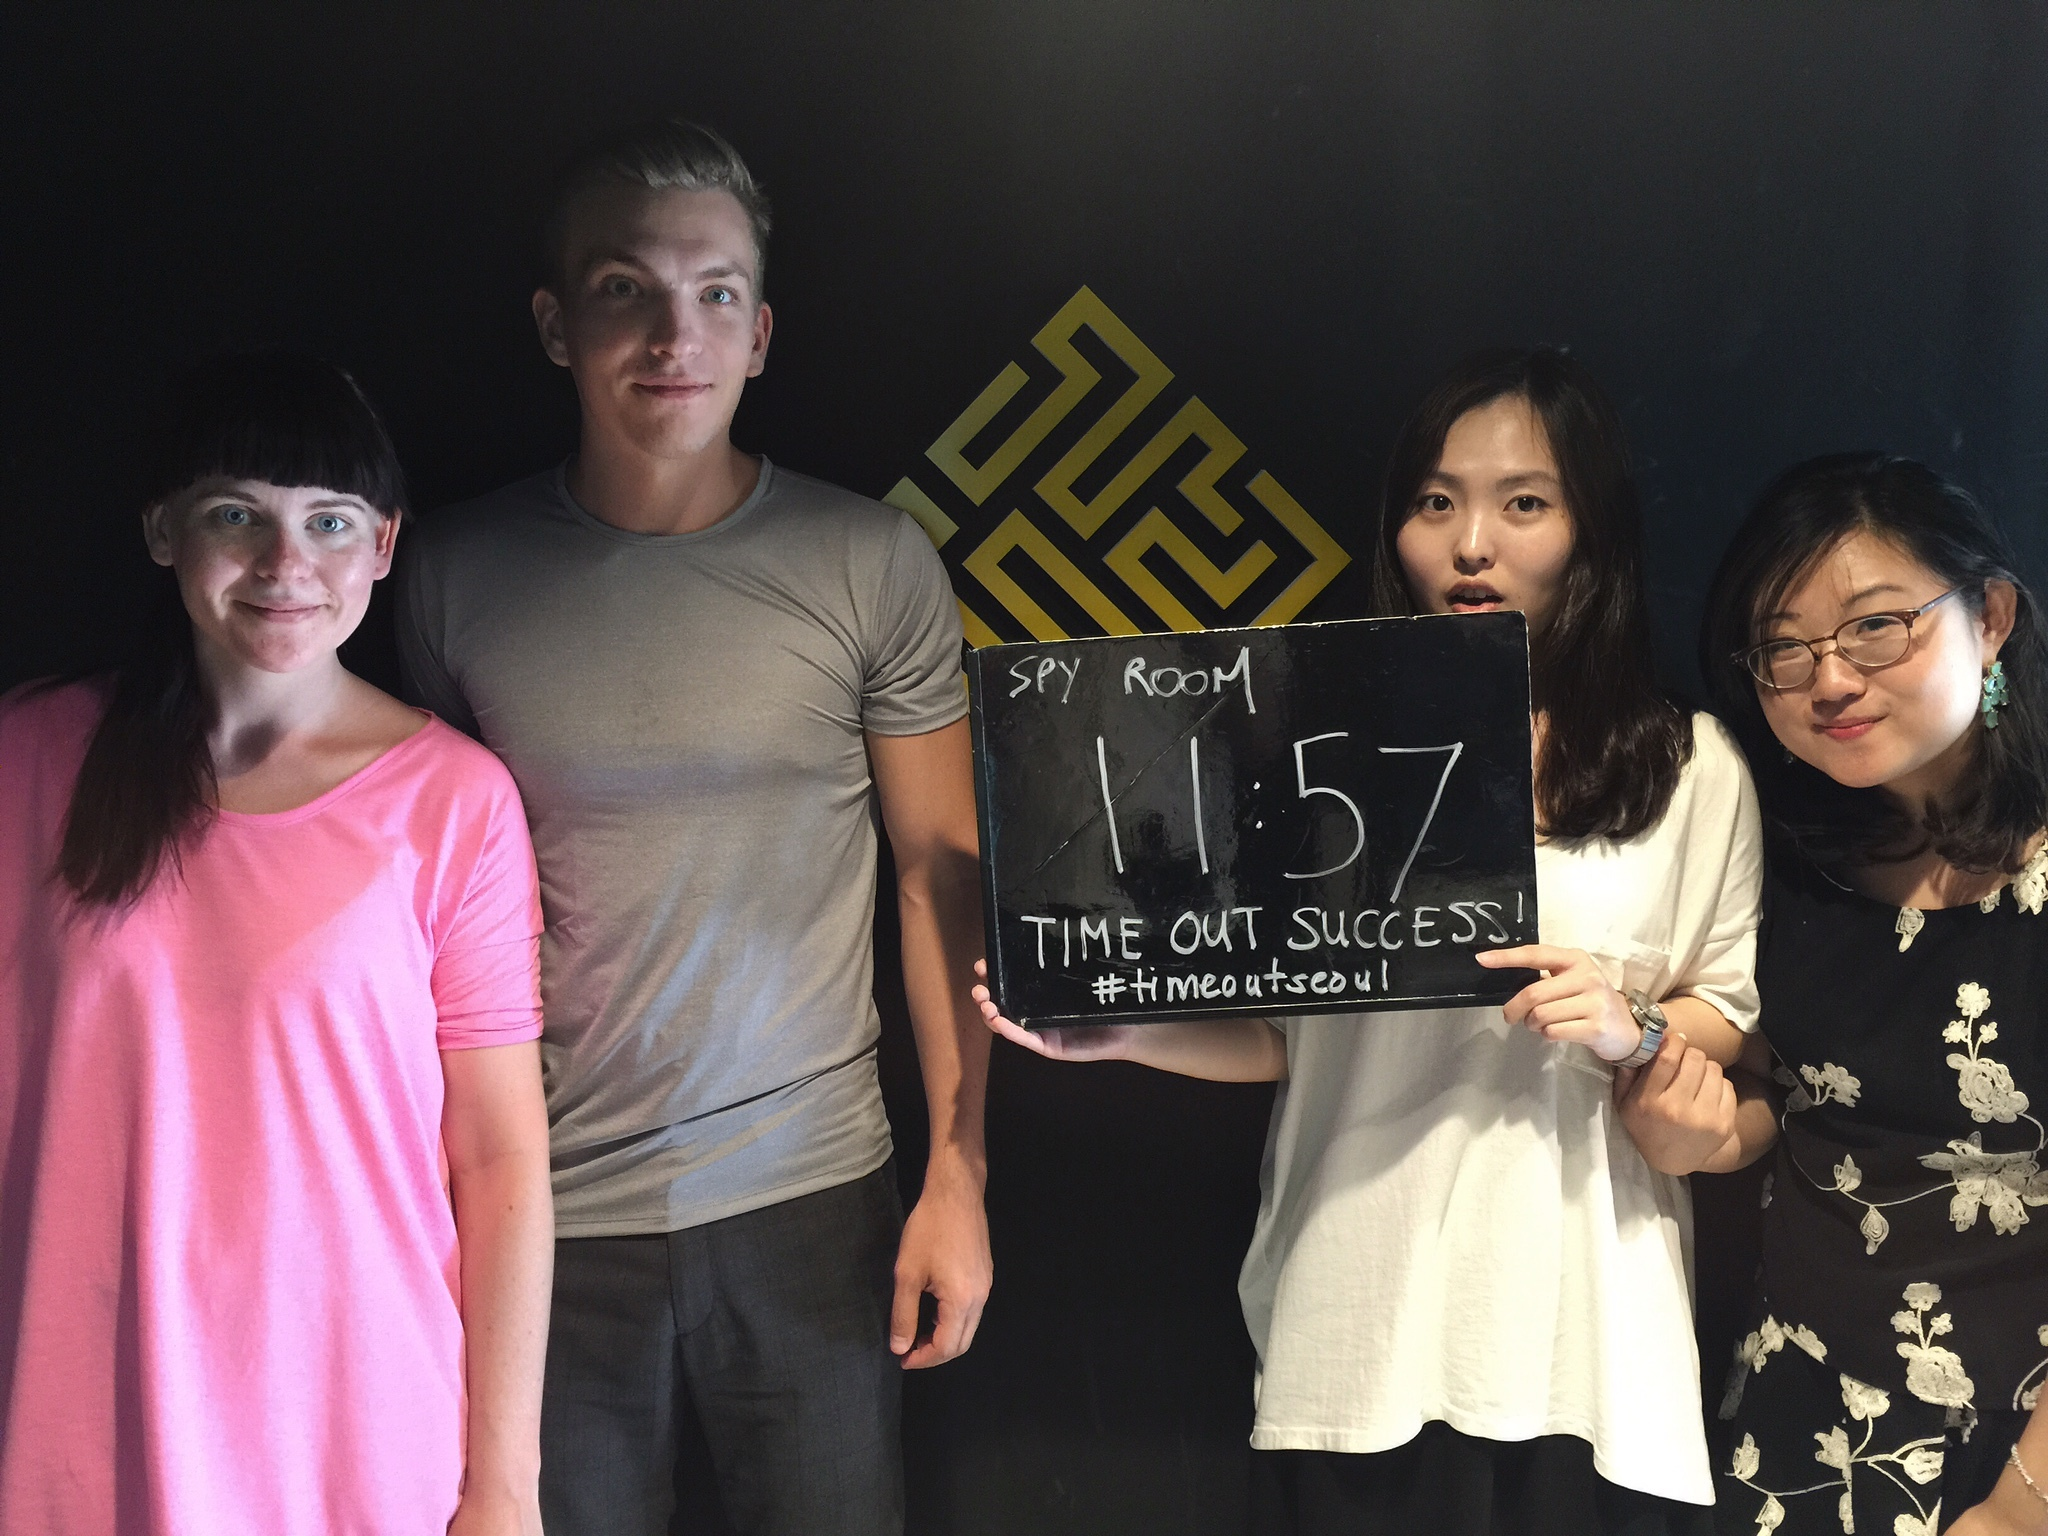 Escape Rooms Seoul S 2015 Must Try Game Time Out Seoul